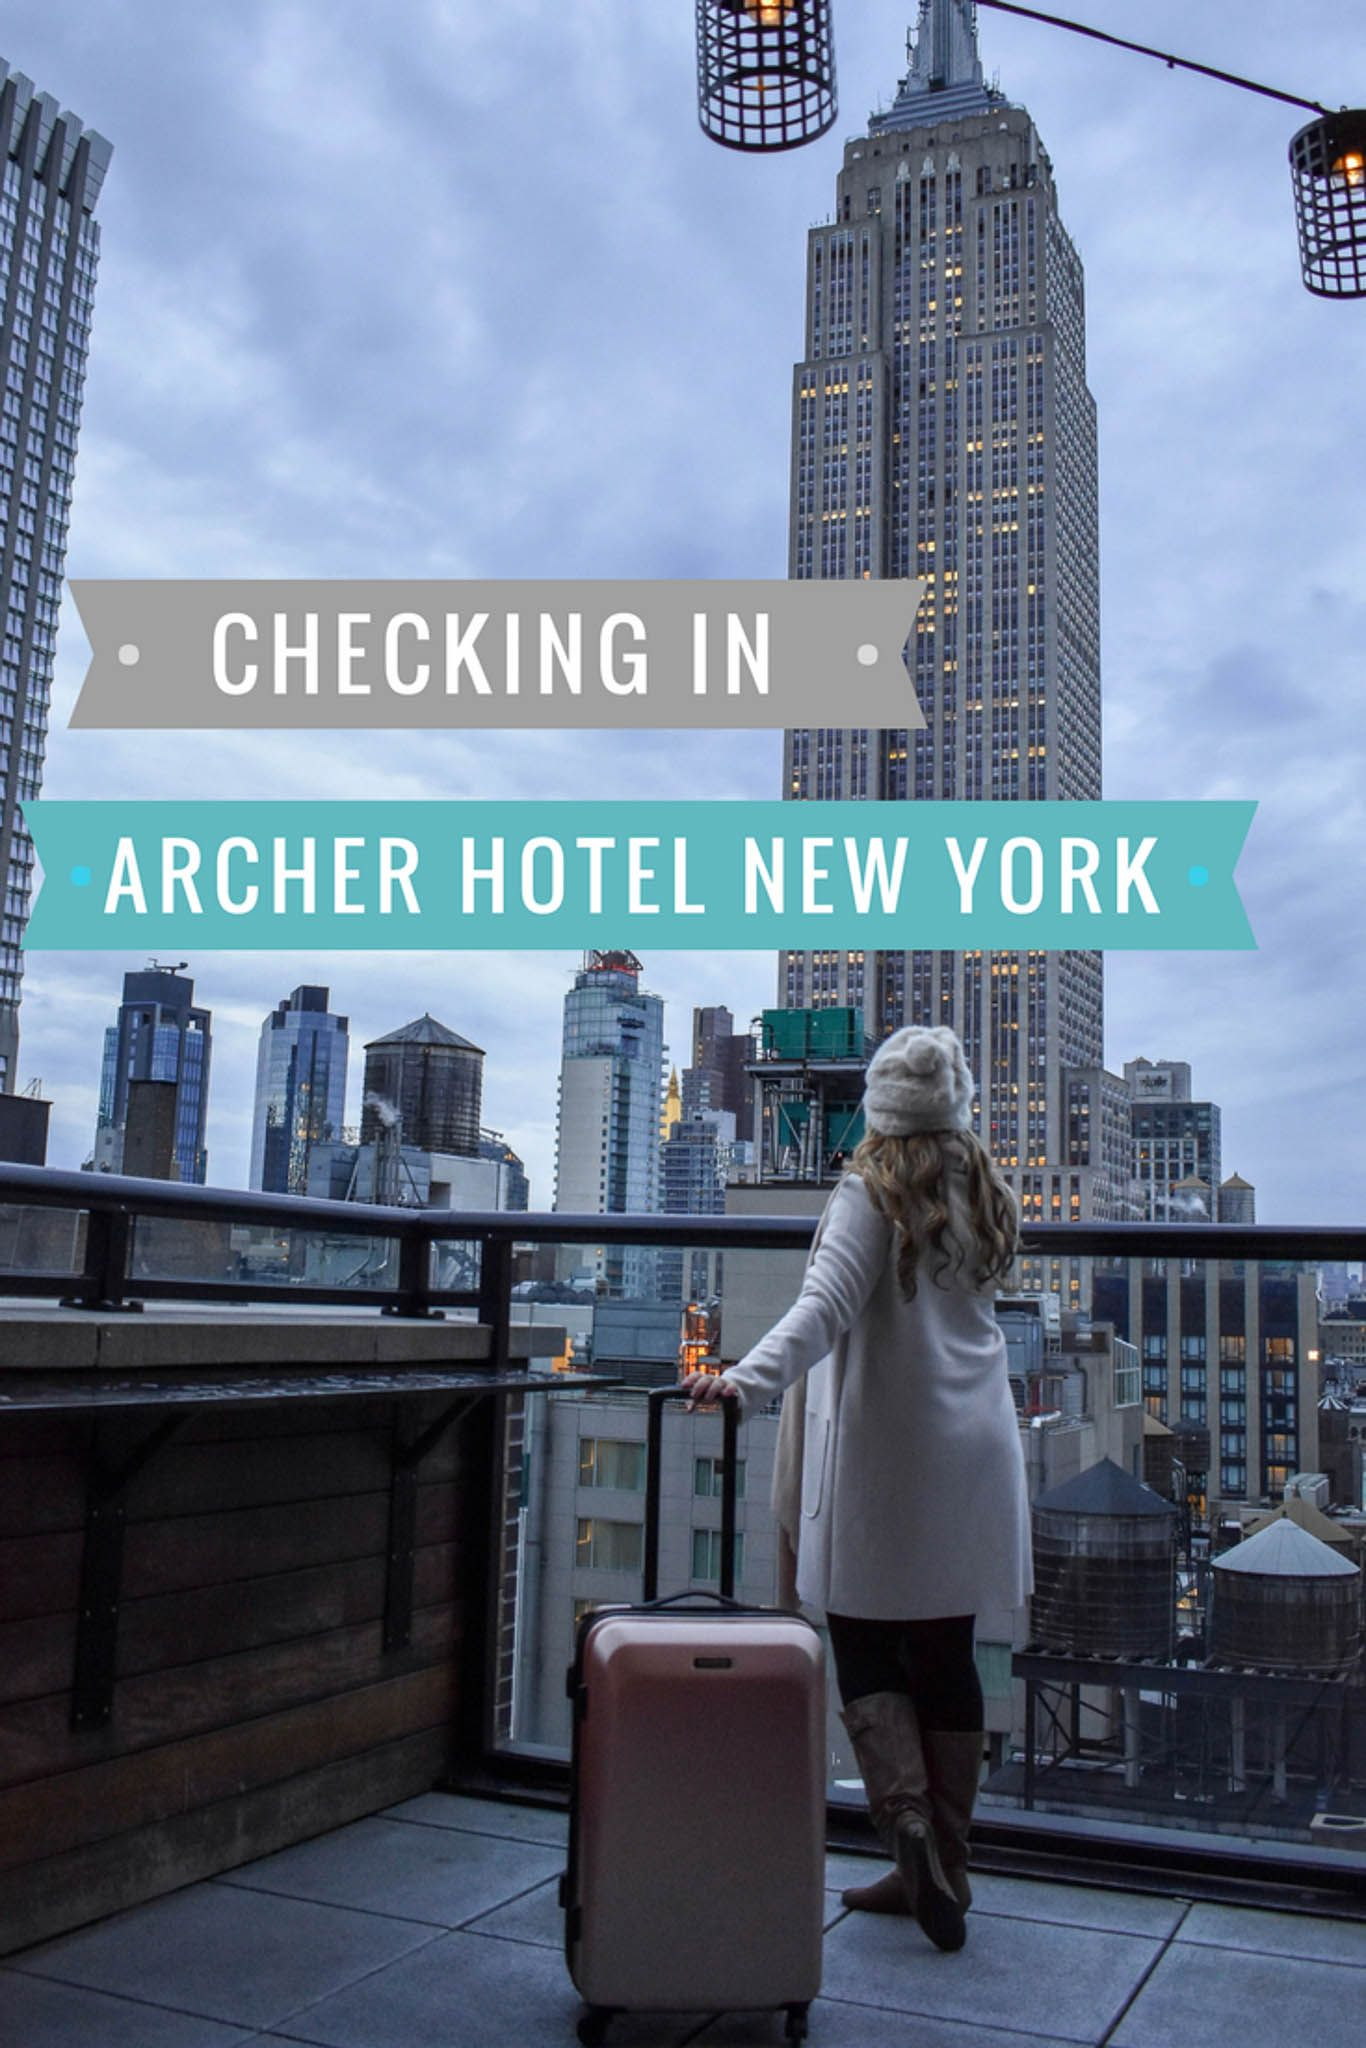 Voucher Code Printable Mobile New York Hotel 2020